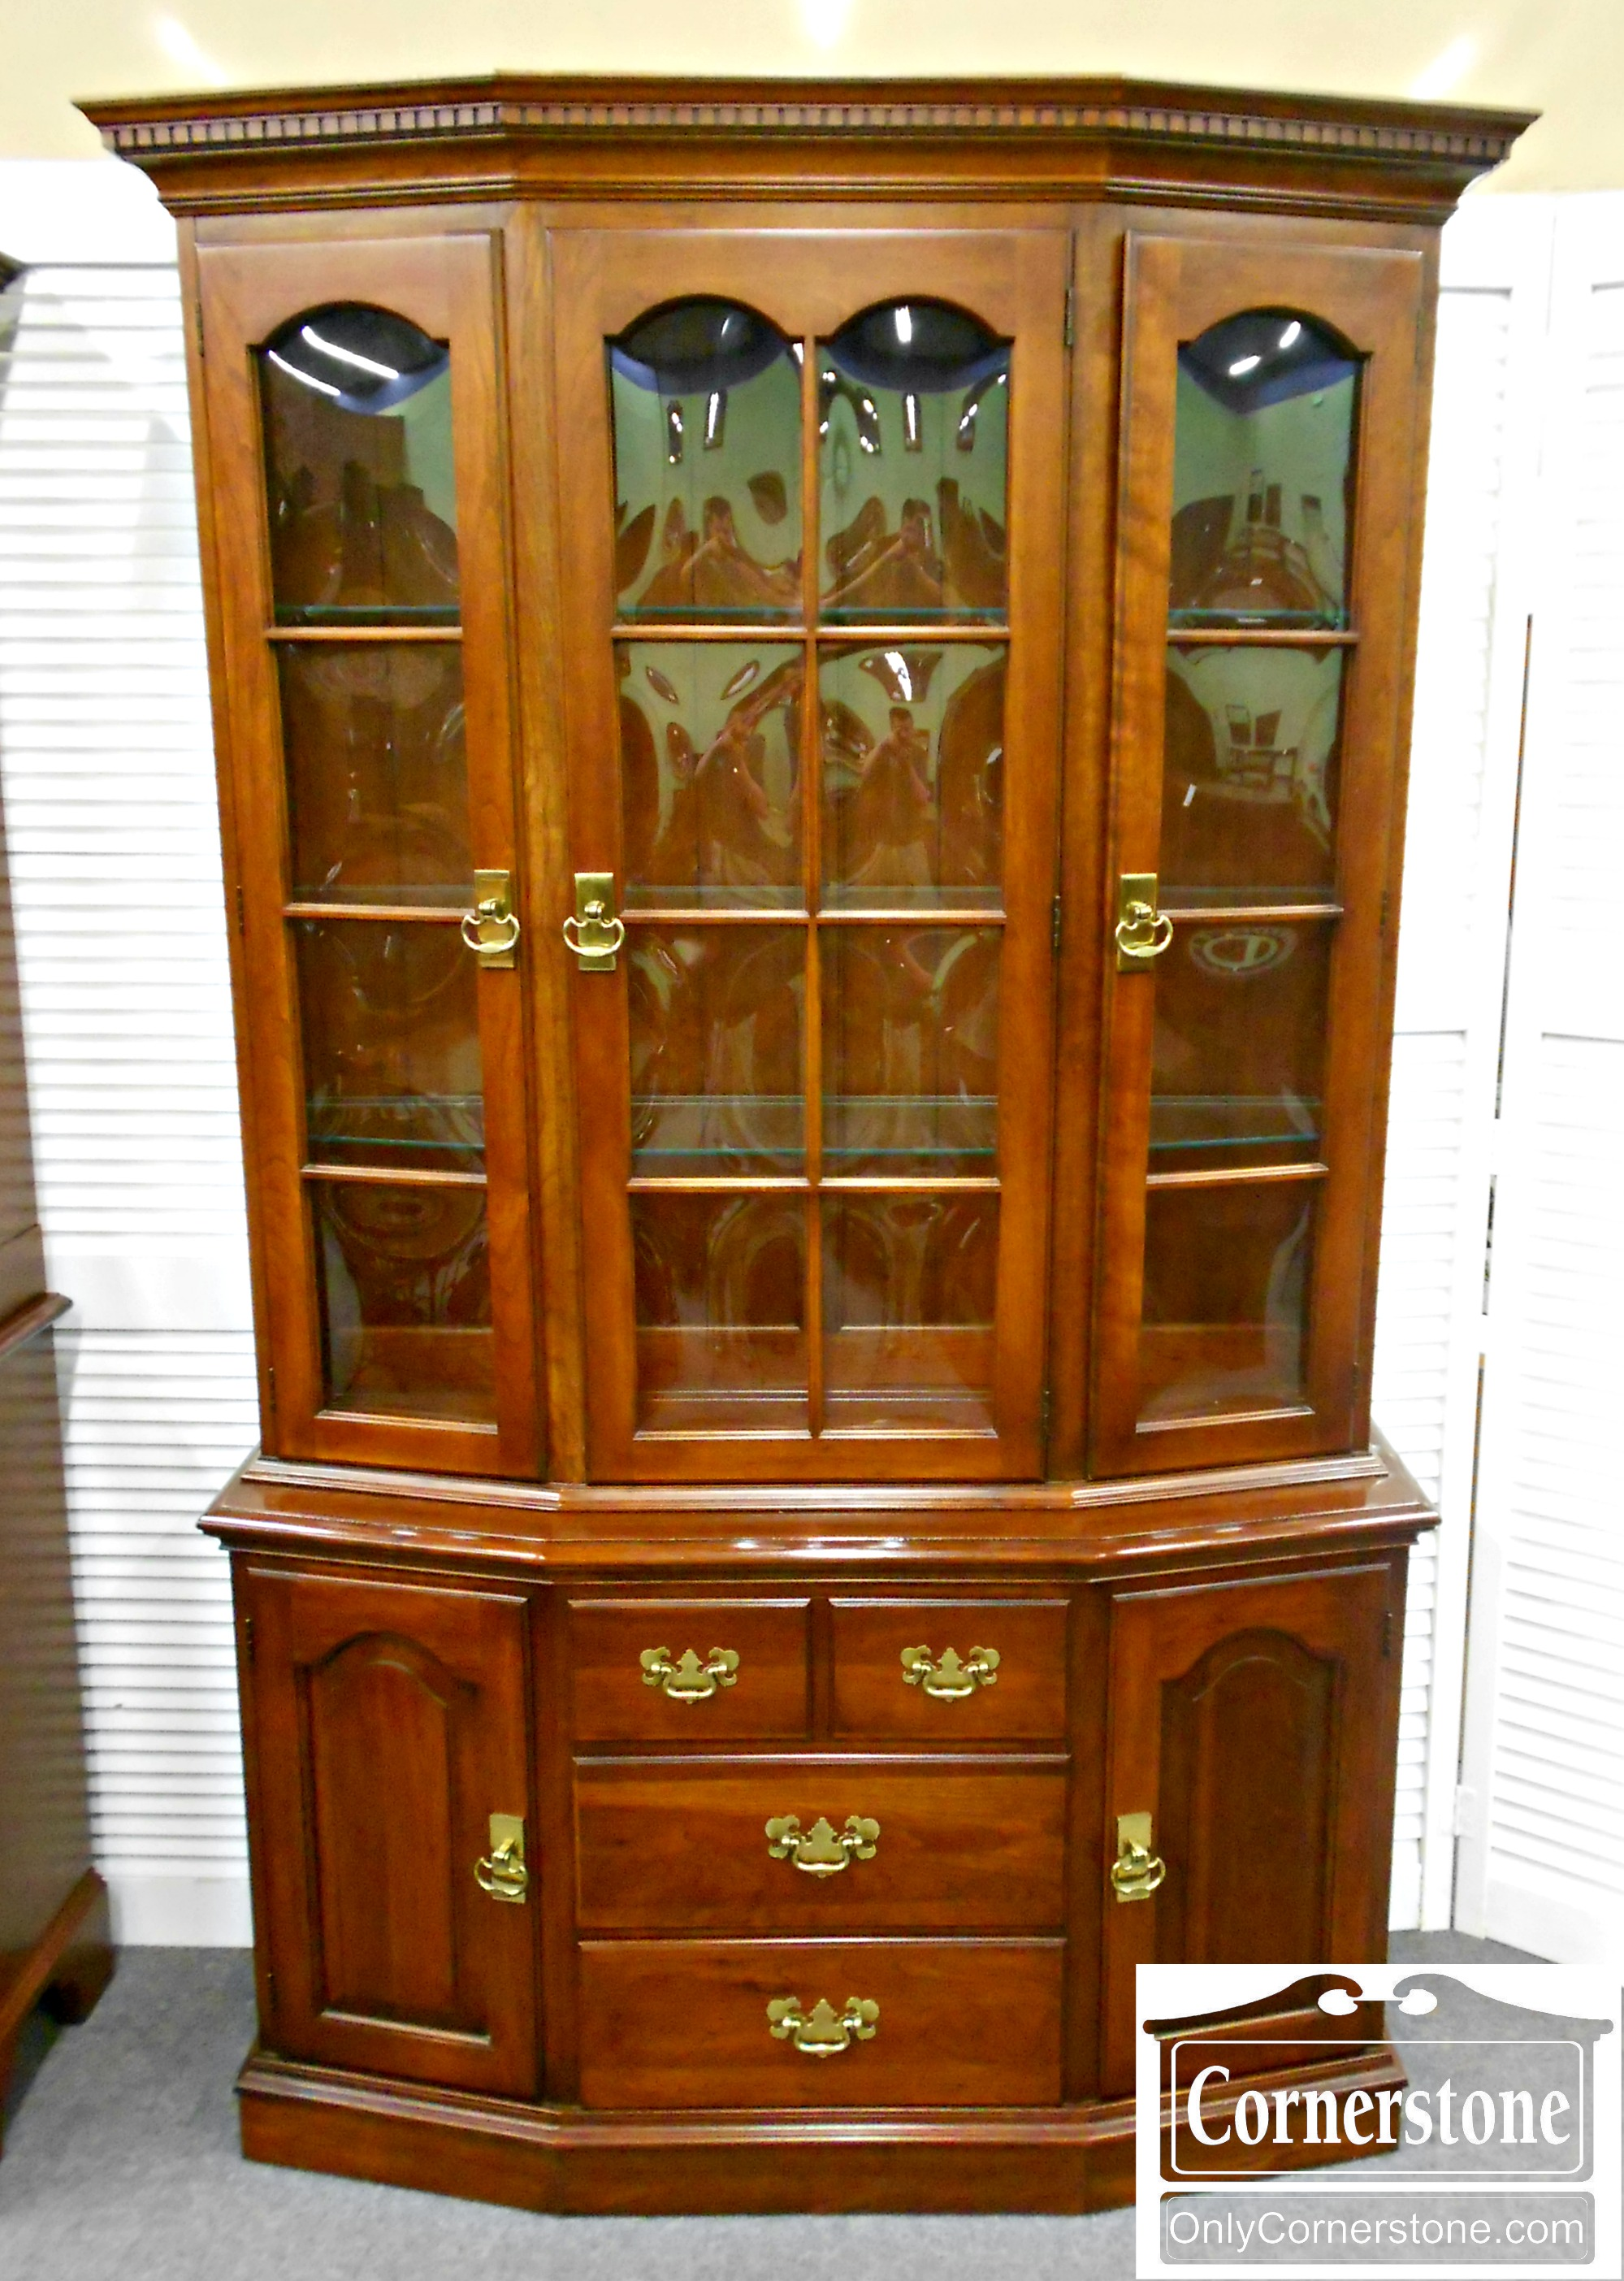 5965-22 PA House Cherry China Cabinet